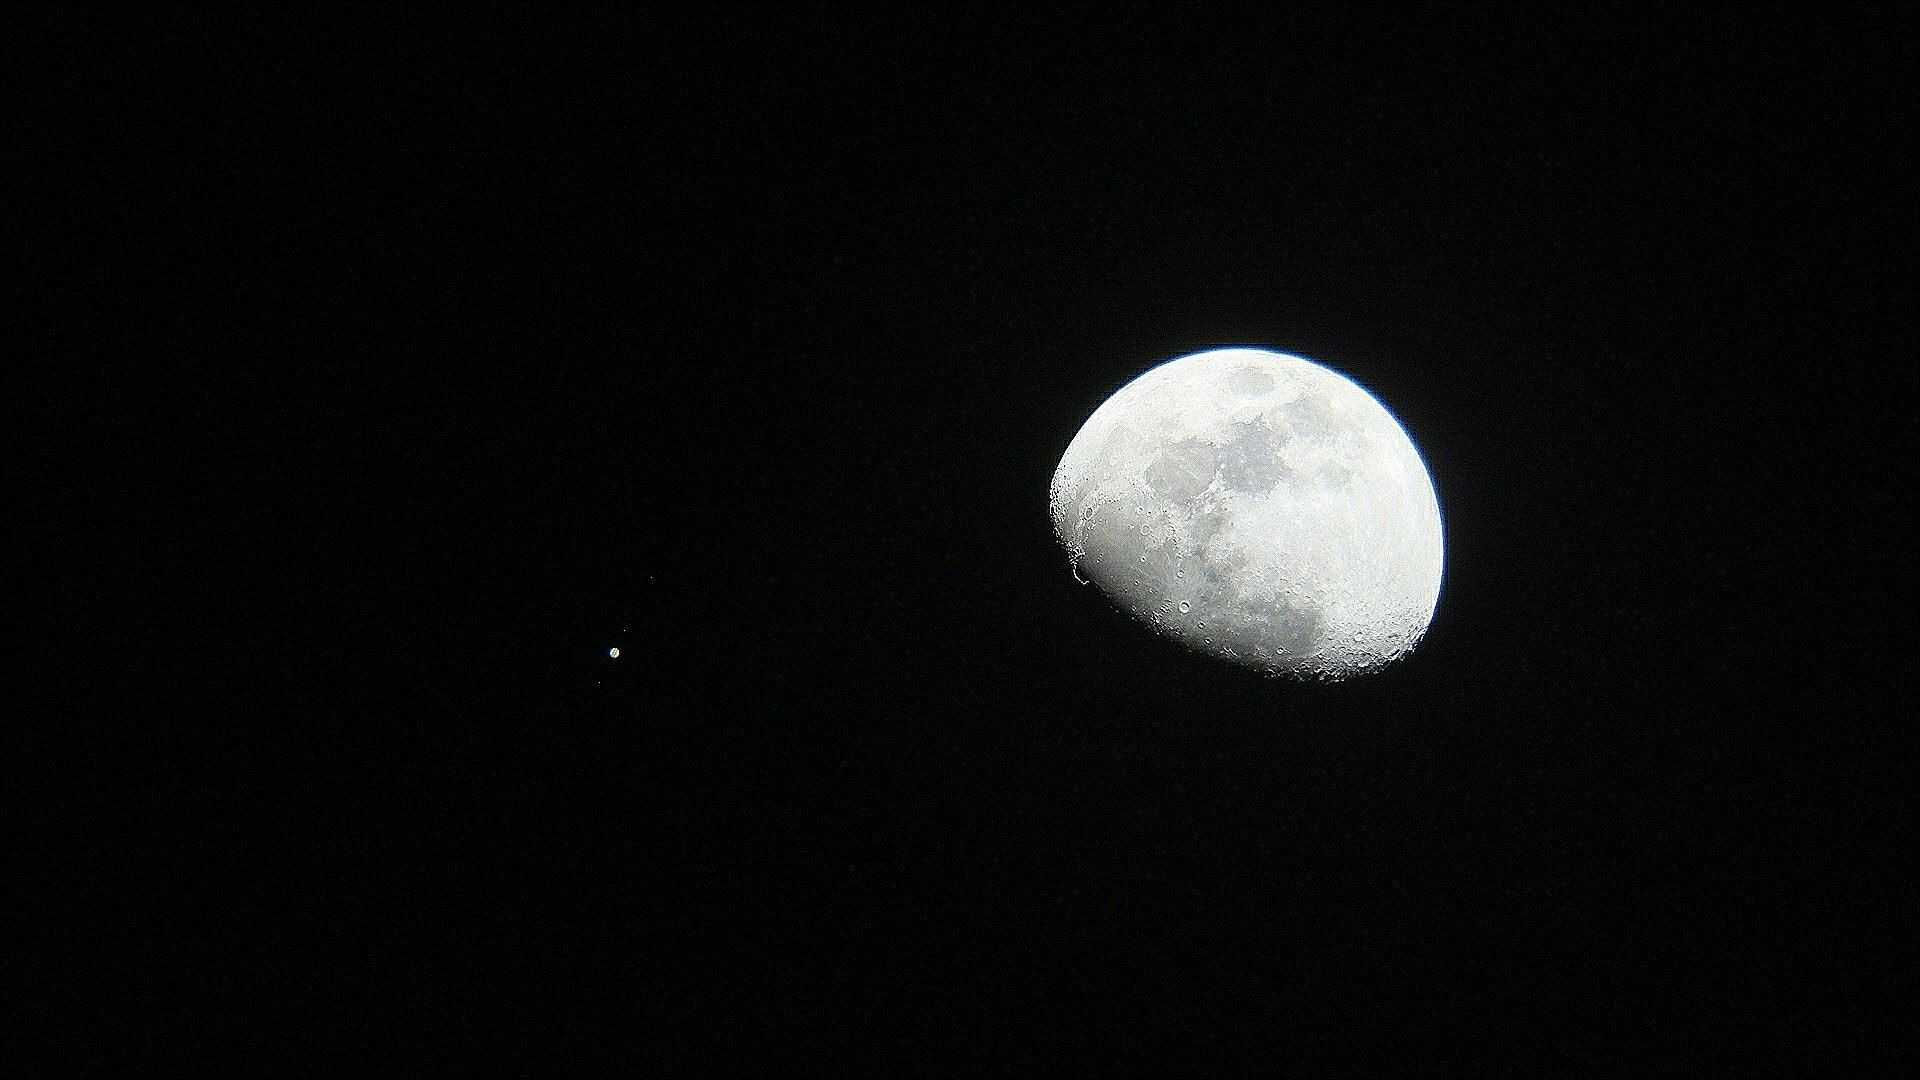 Moon and Jupiter conjunction | Astronomy Pictures at Orion